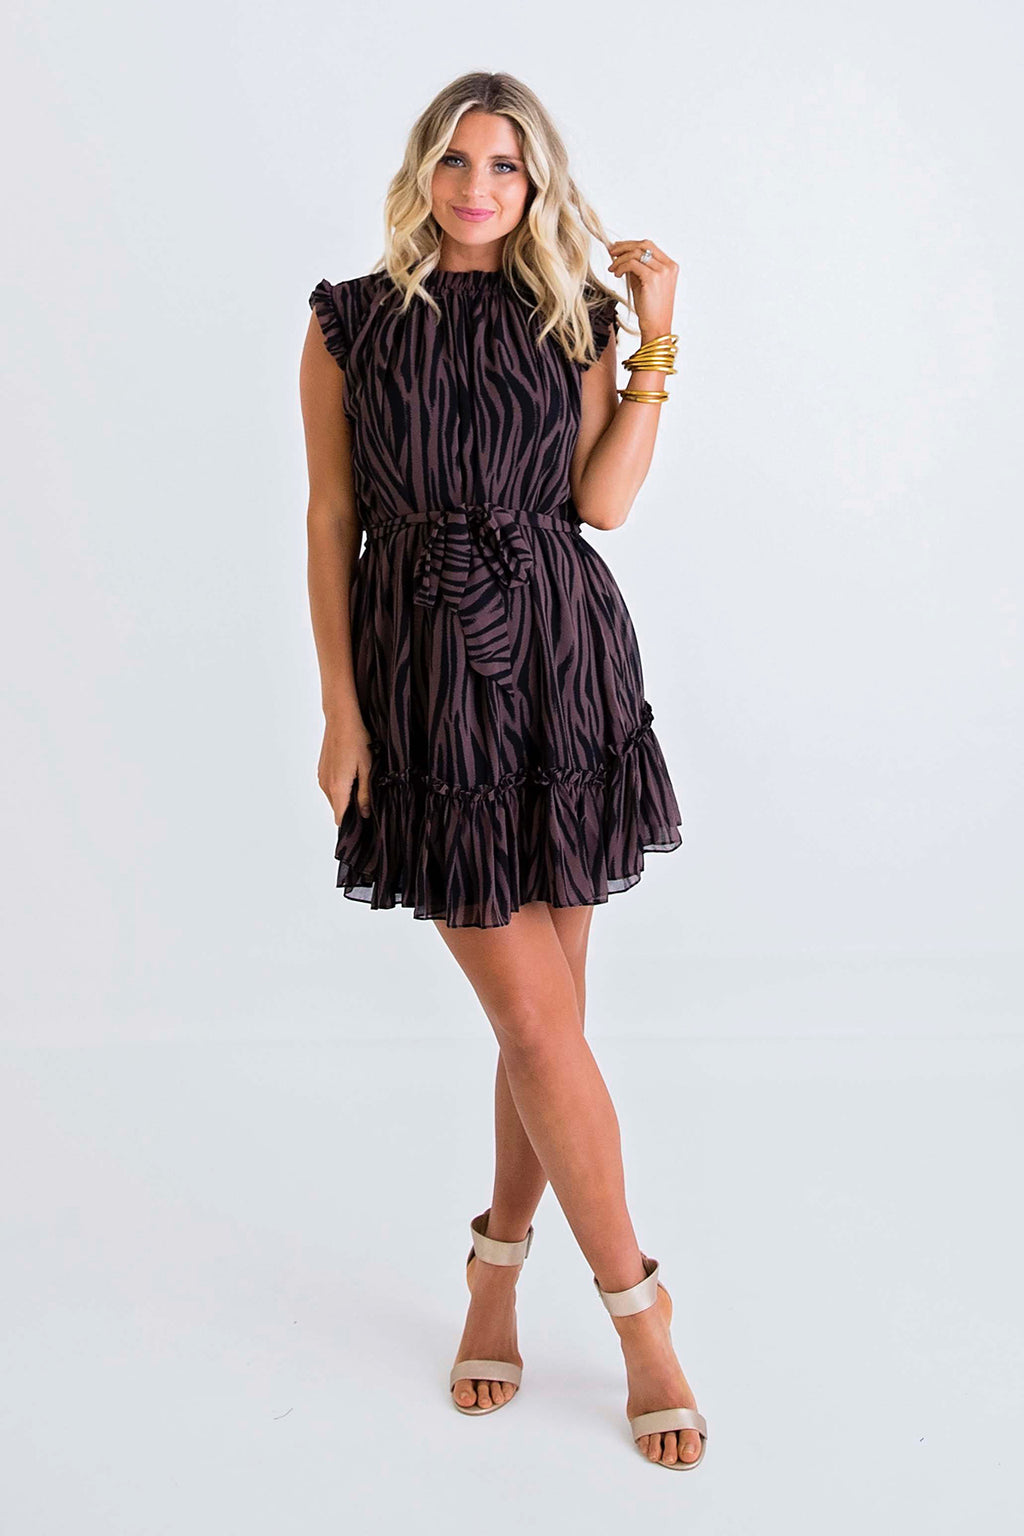 Zebra Chiffon Sleeveless Dress